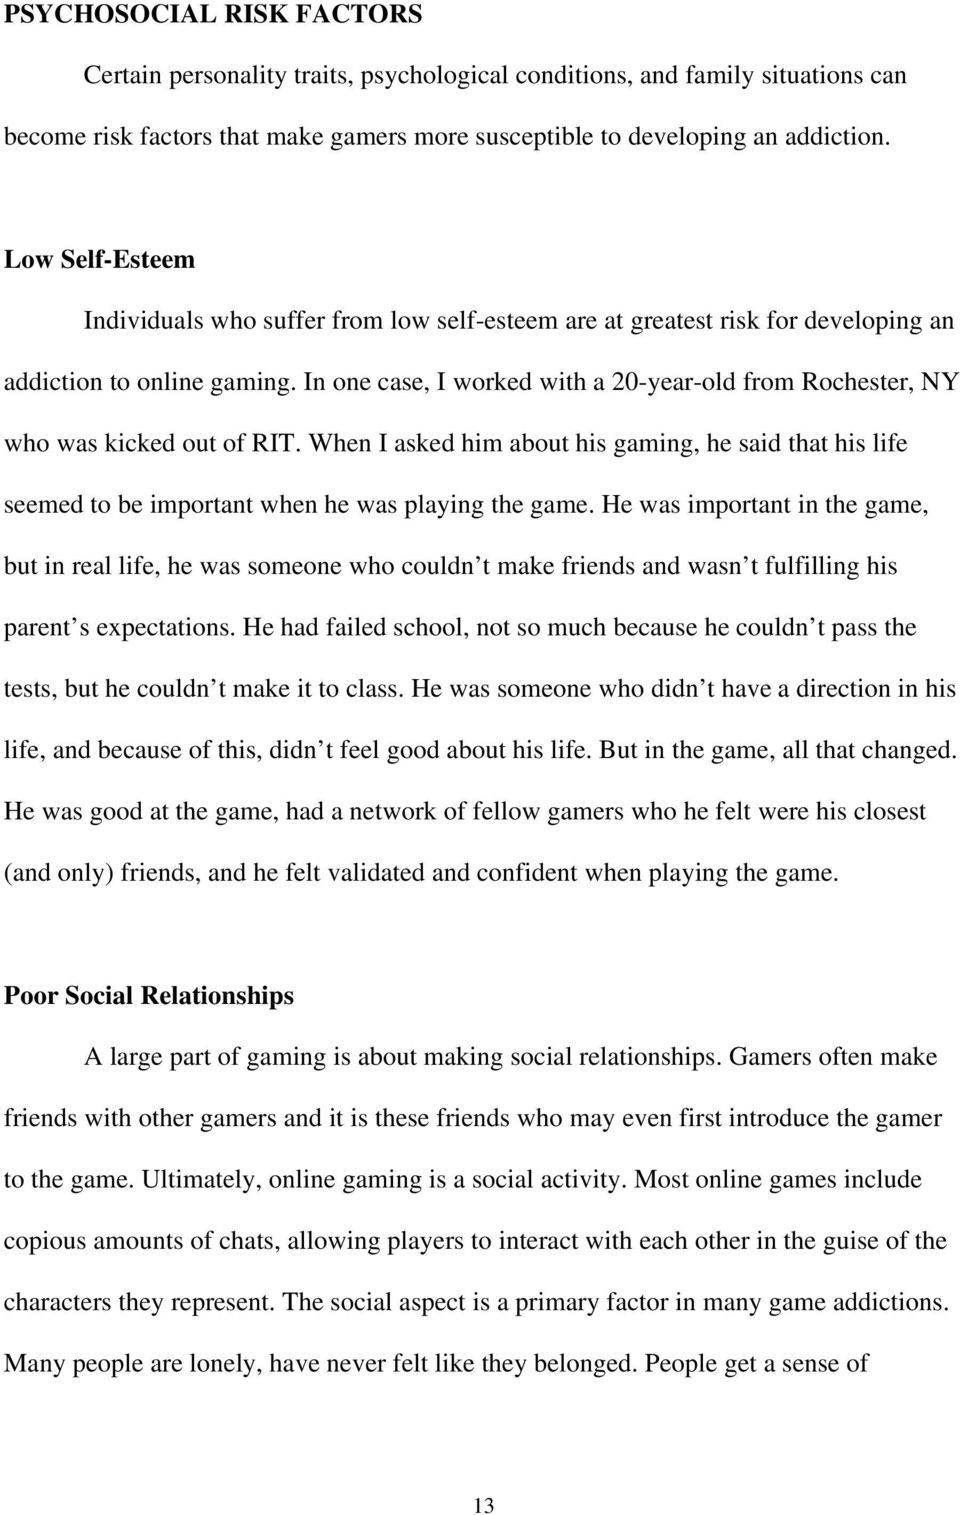 In one case, I worked with a 20-year-old from Rochester, NY who was kicked out of RIT. When I asked him about his gaming, he said that his life seemed to be important when he was playing the game.